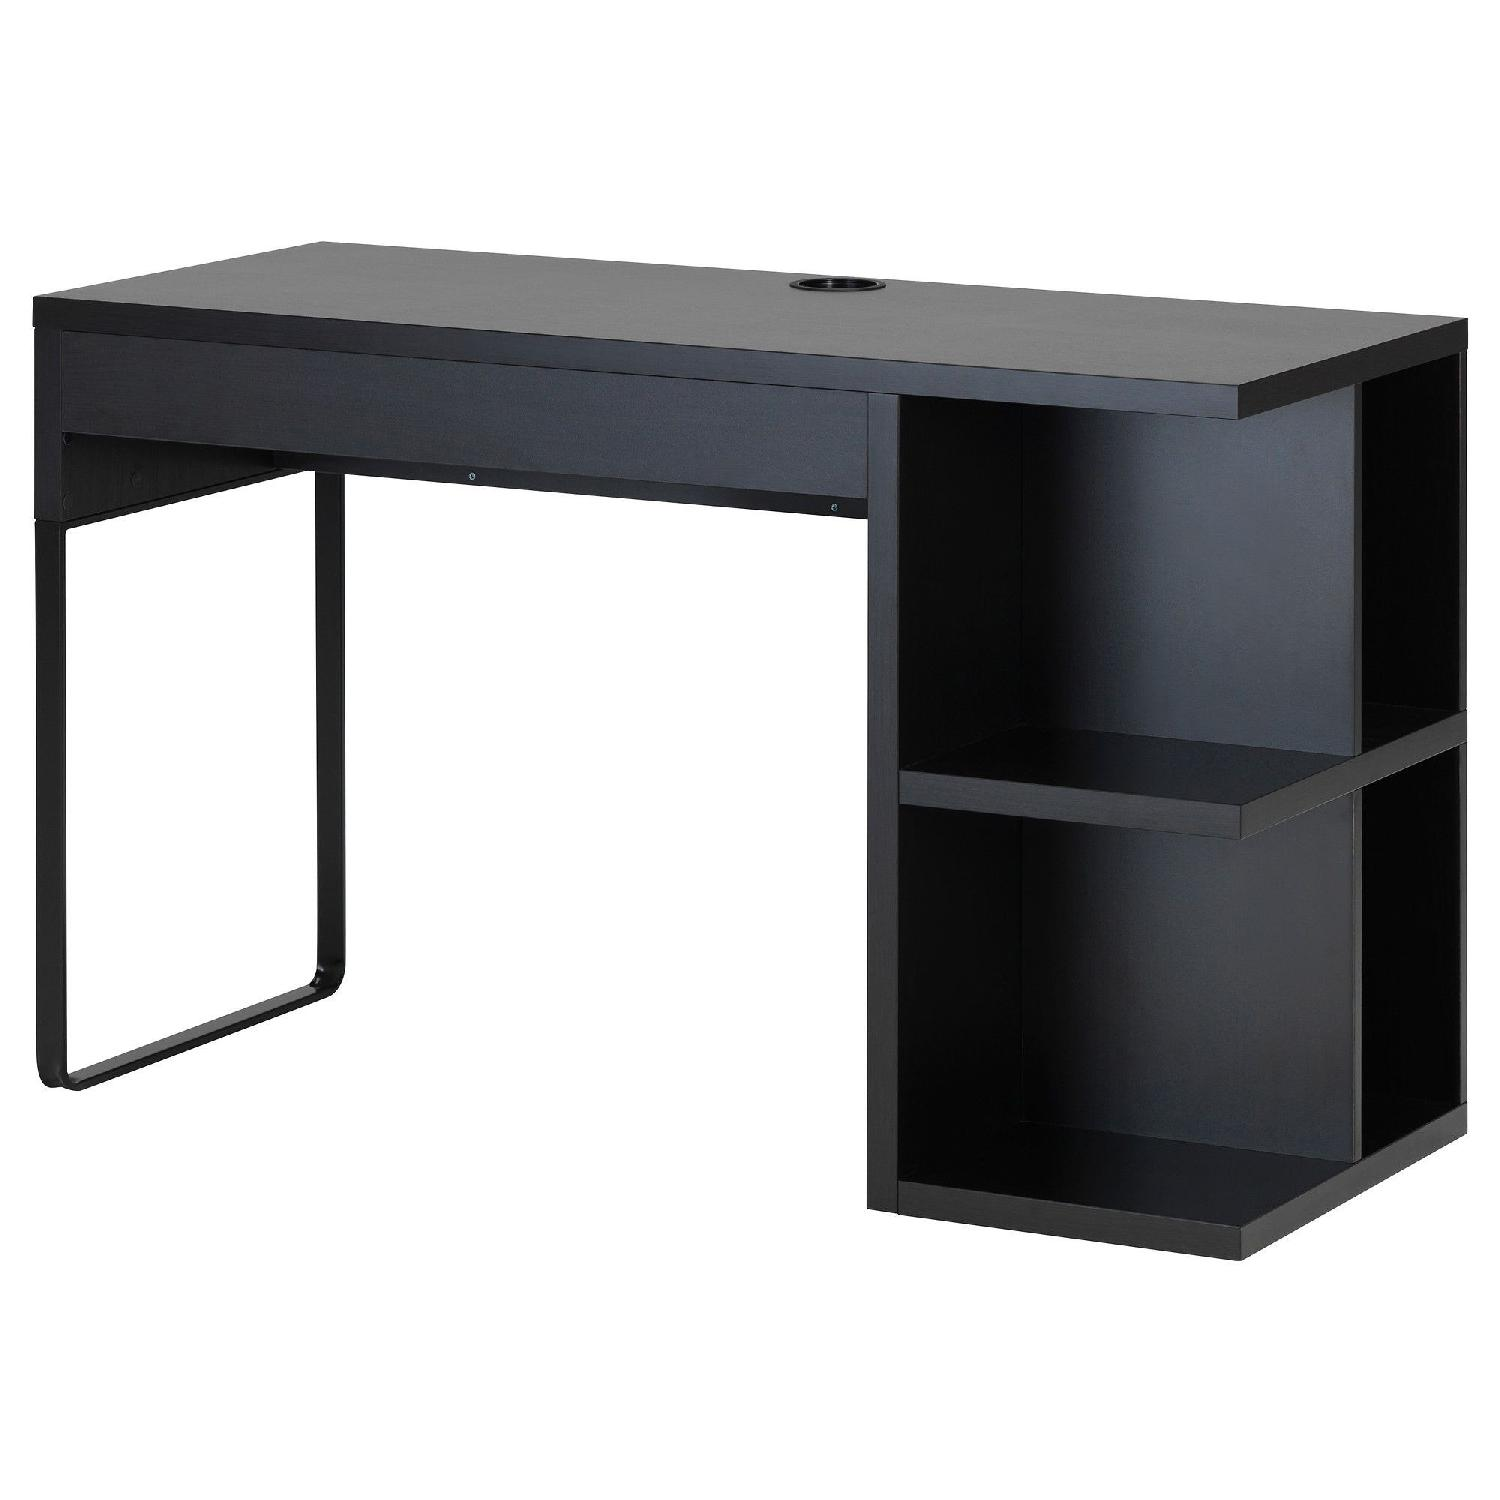 Ikea Micke Black Desk w/ Shelves